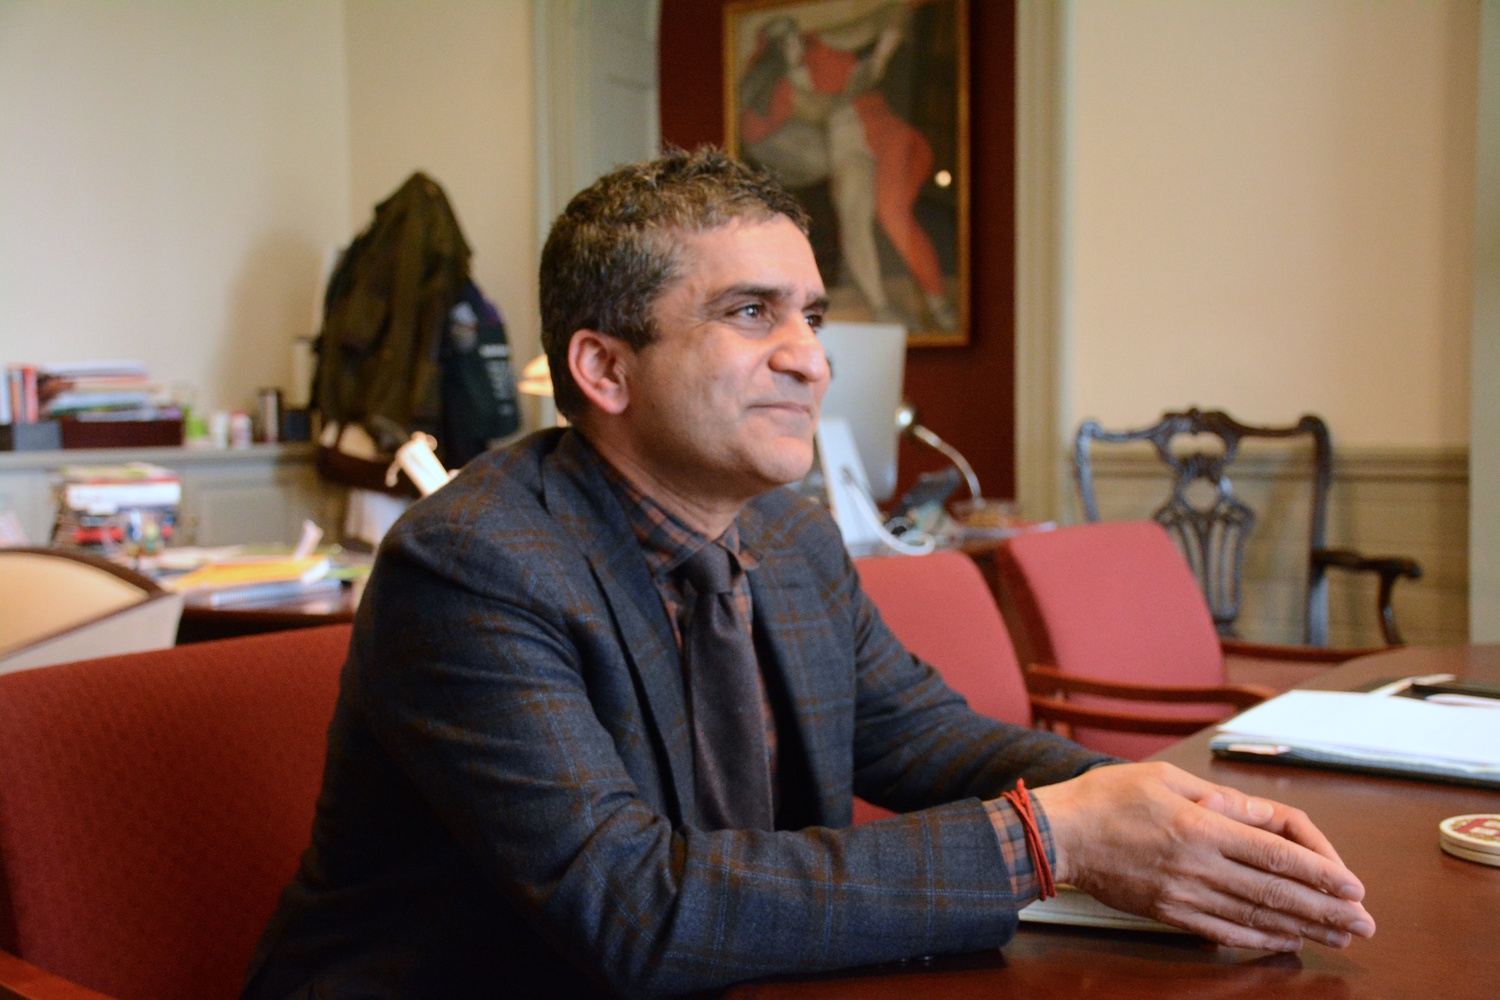 Dean of the College Rakesh Khurana, pictured here in April, said Friday that Harvard needs more information before making any decisions about a possible multicultural center.